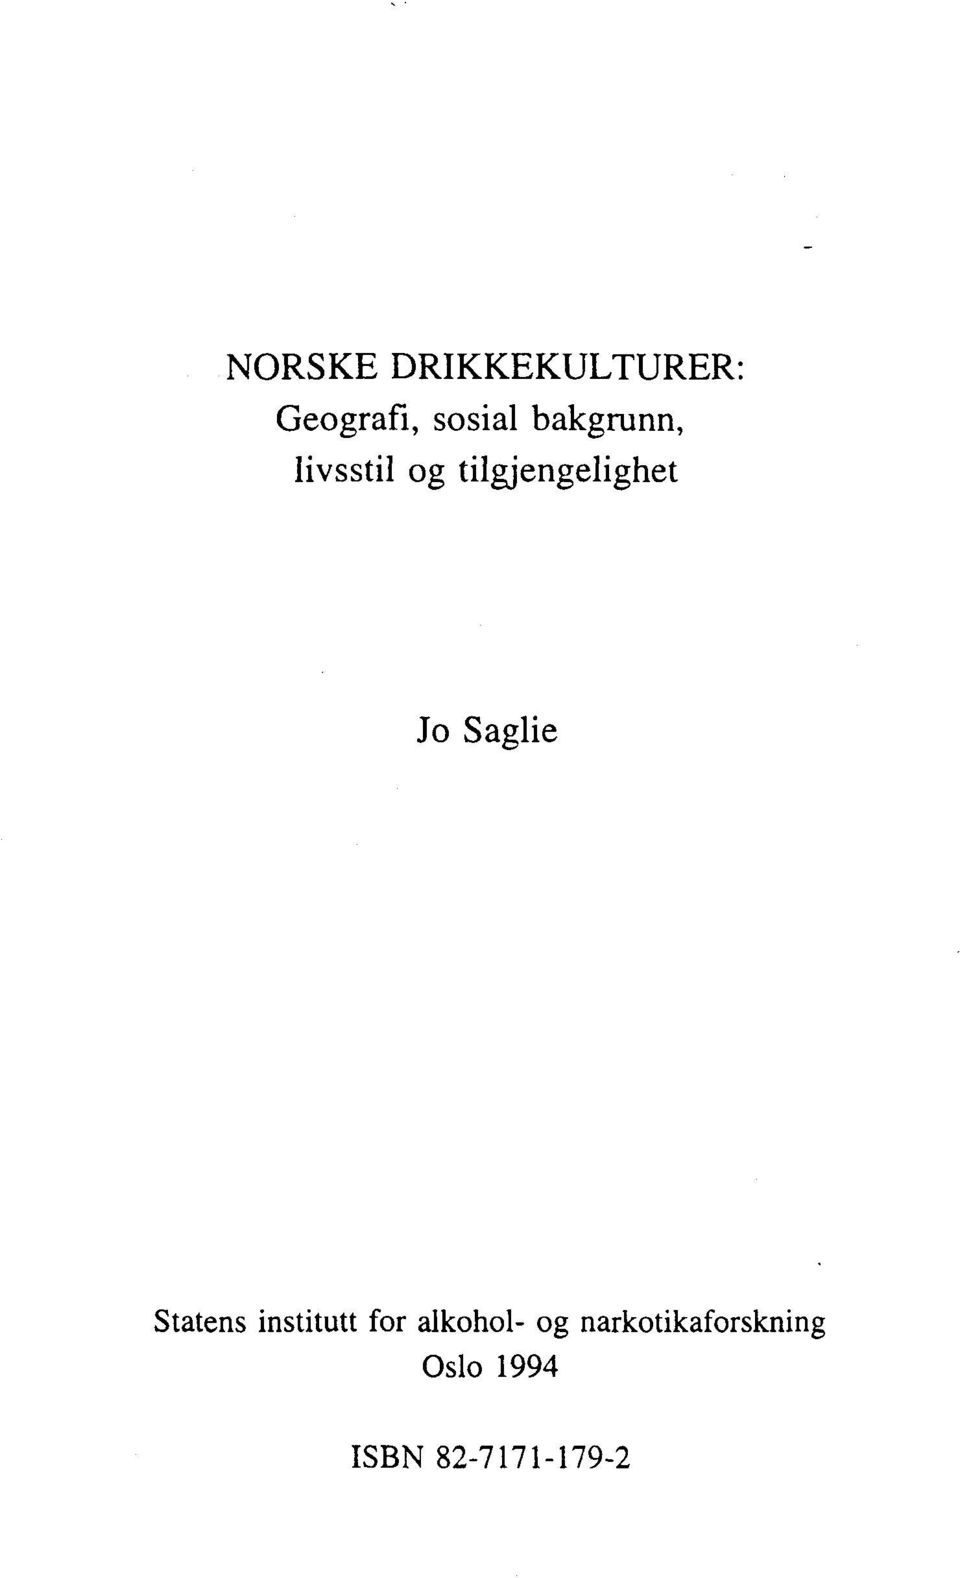 Saglie Statens institutt for alkohol- og